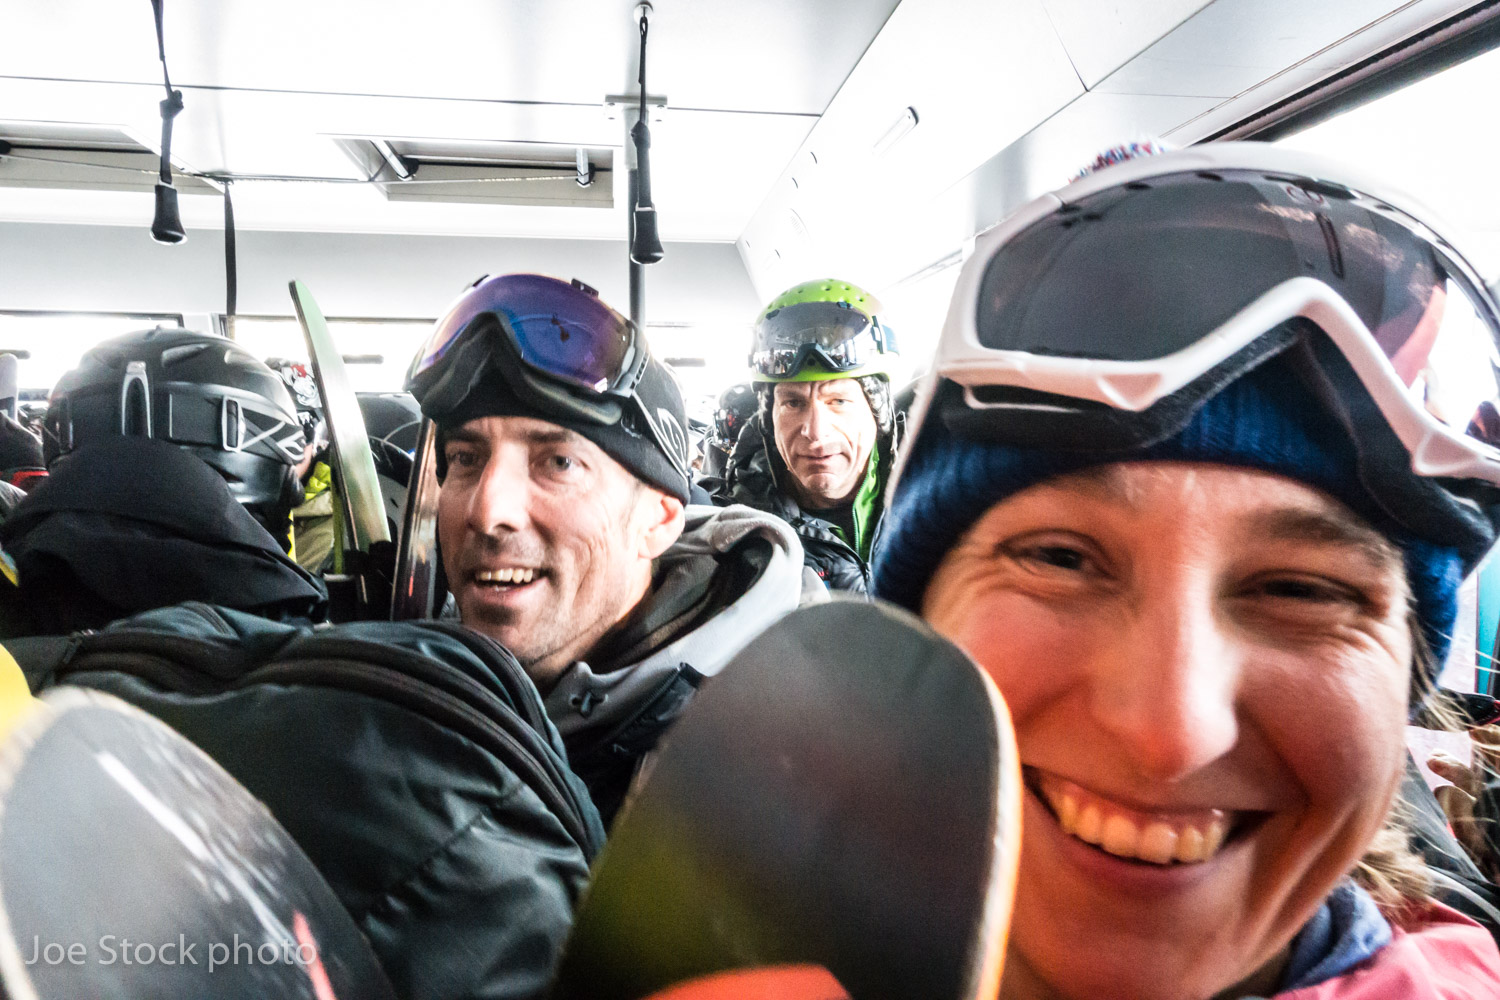 John Fitzgerald, Don Sharaf and Erica Engle on the Jackson Hole tram during a four-day American Avalanche Association professional training course. Next year US avalanche education is splitting into professional and recreational tracks. This course was for the instructors who will be teaching the pro-level courses to guides, ski patrolers and other avalanche professionals.